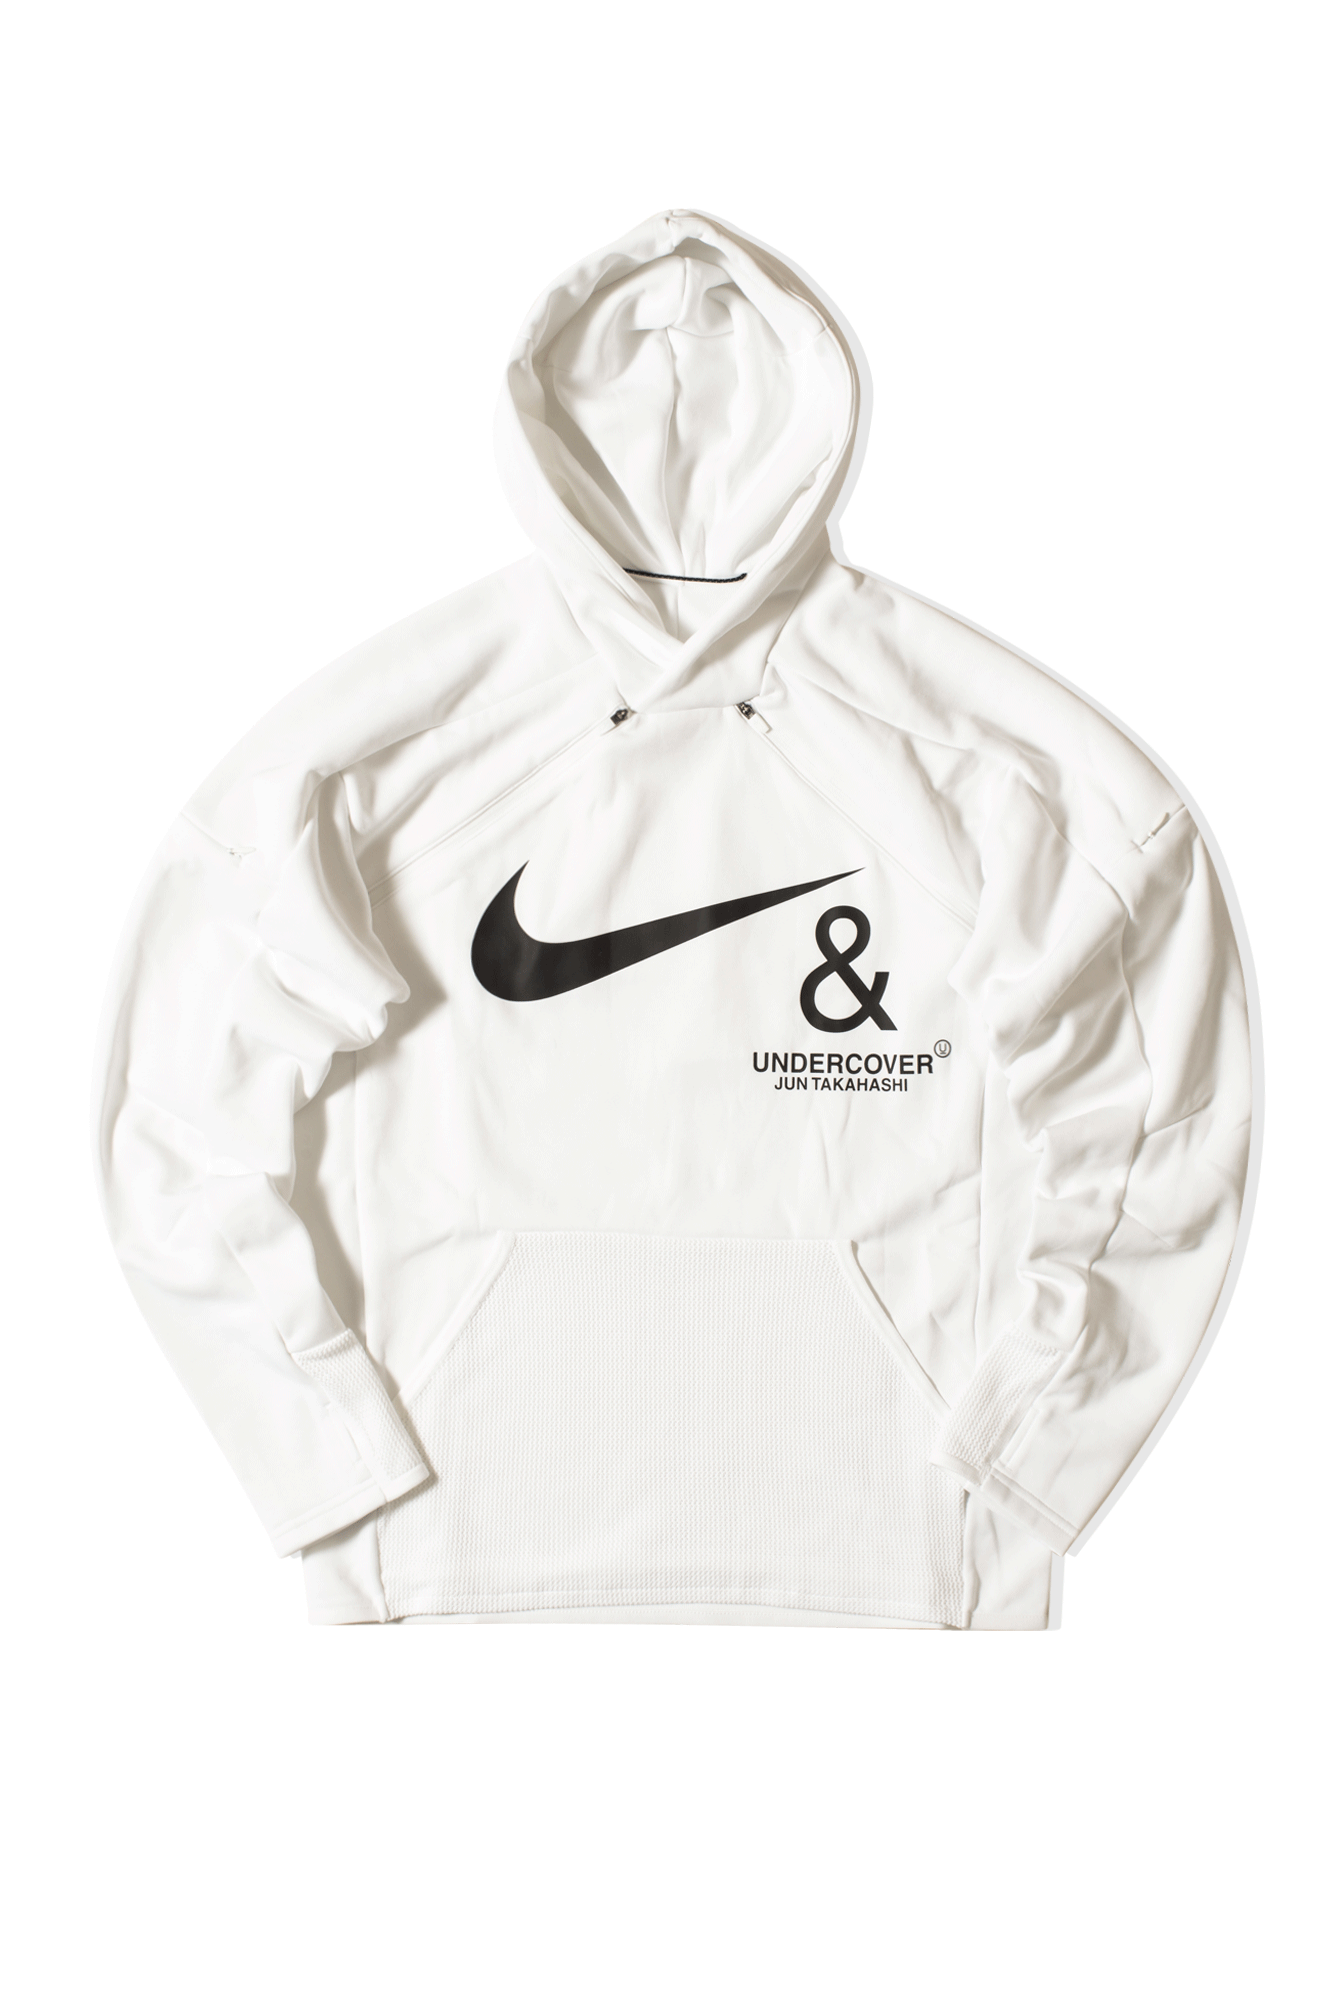 M NRG Undercover Hoodie White